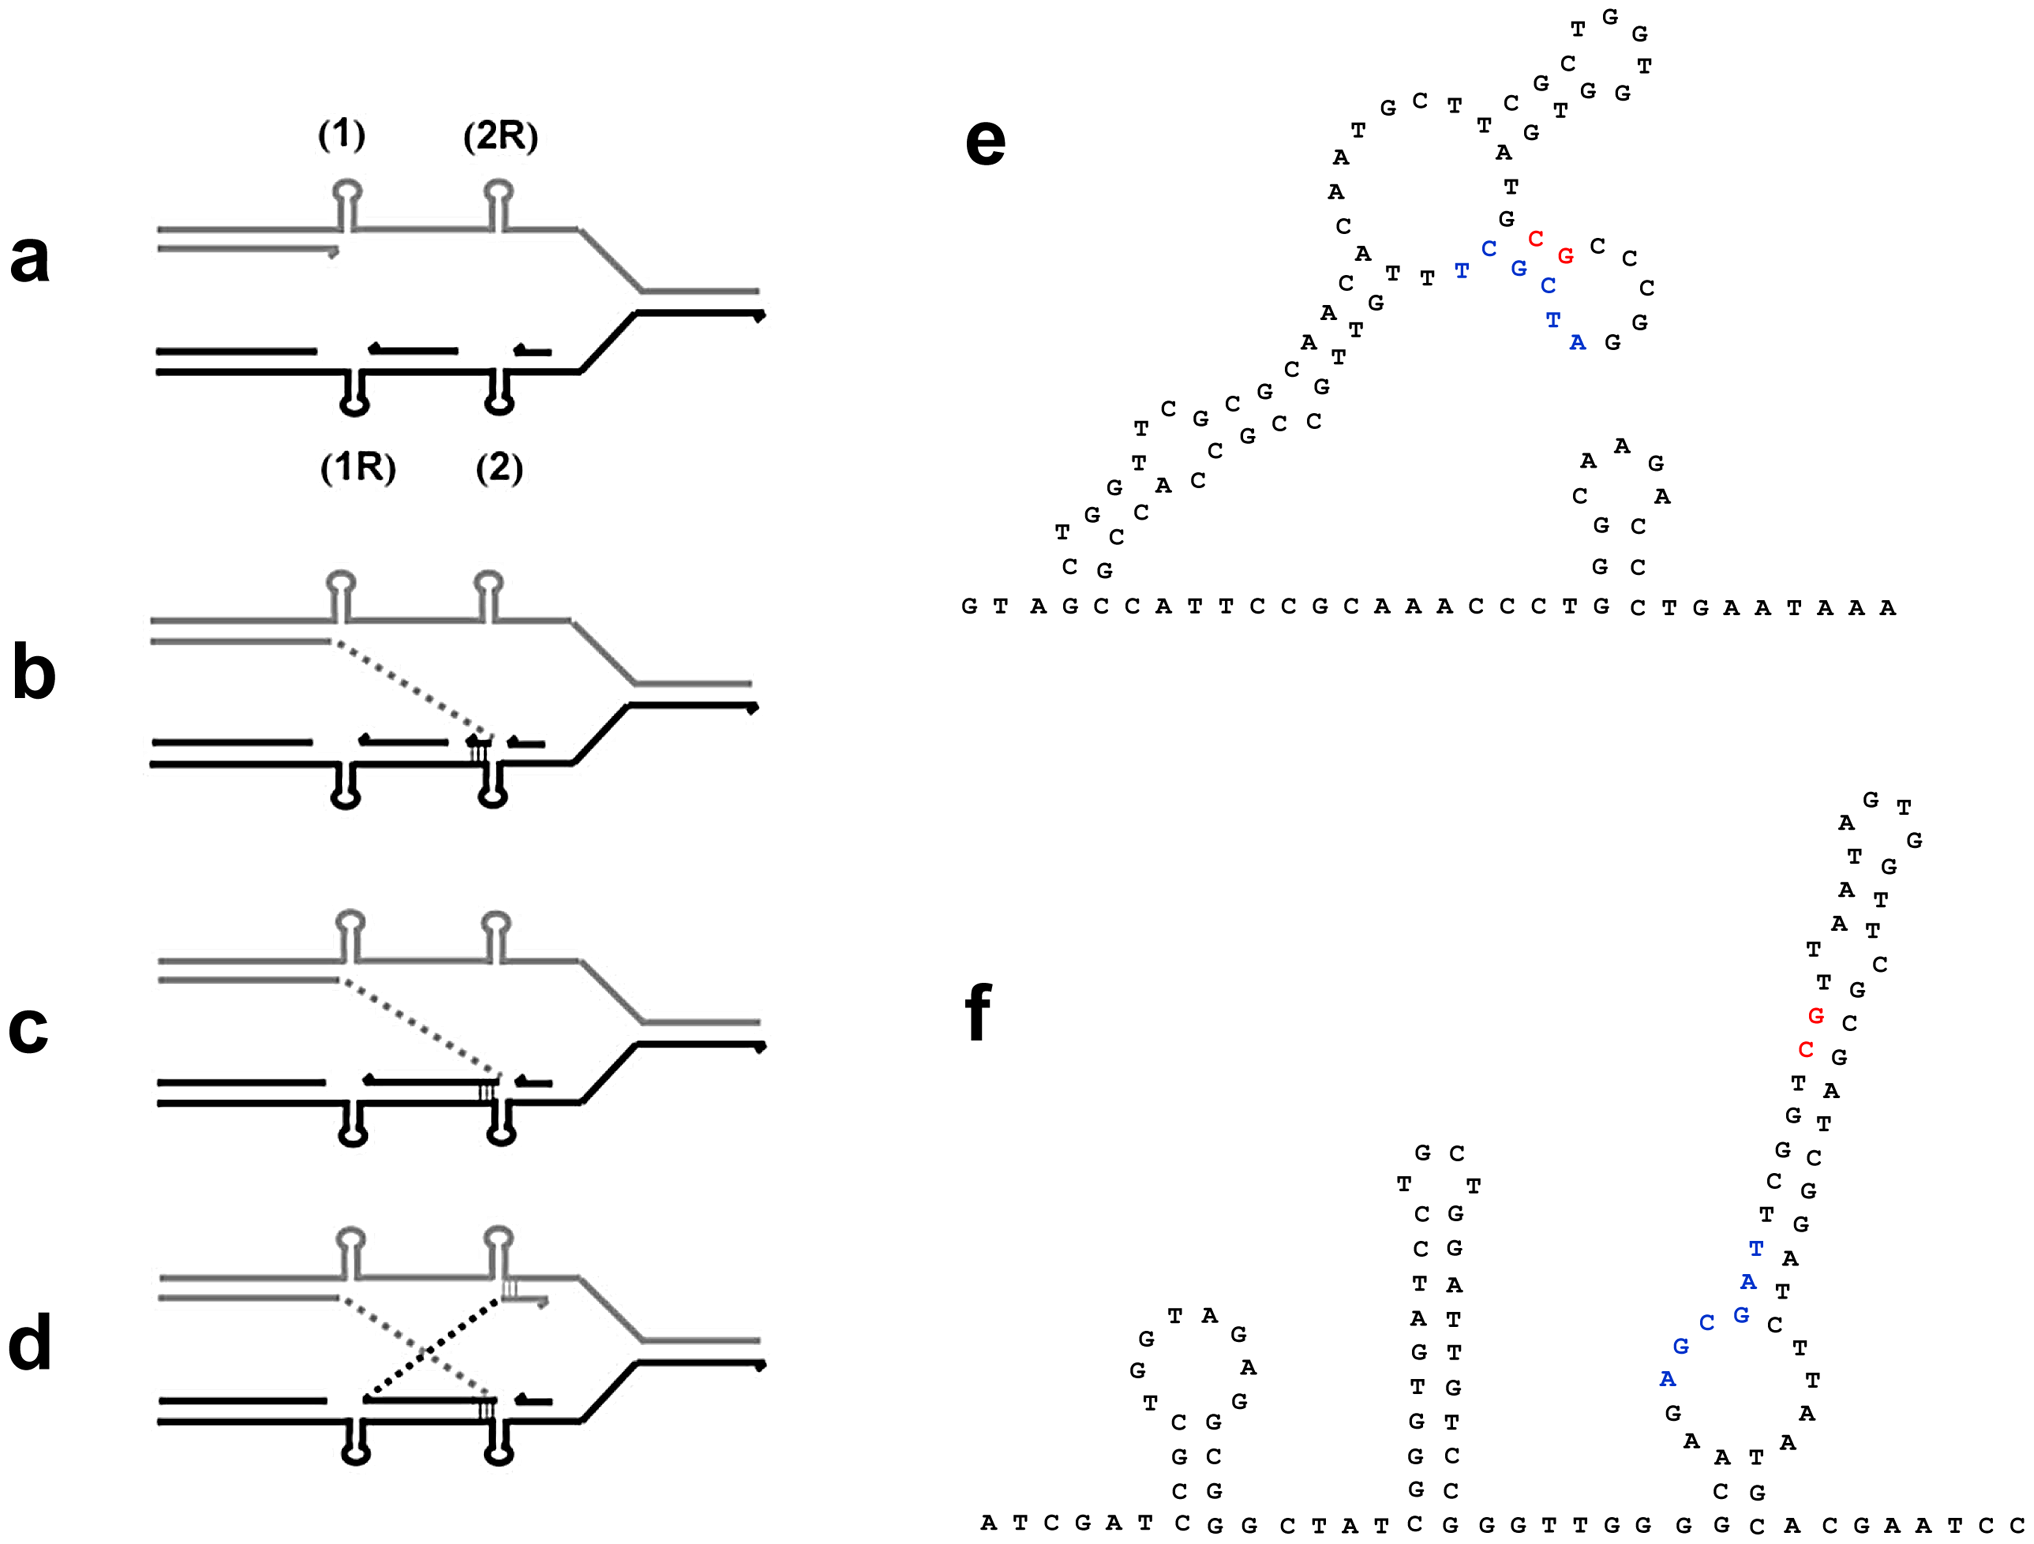 A model for inversion formation by template-switching giving non-homologous recombination in close to reciprocal positions.